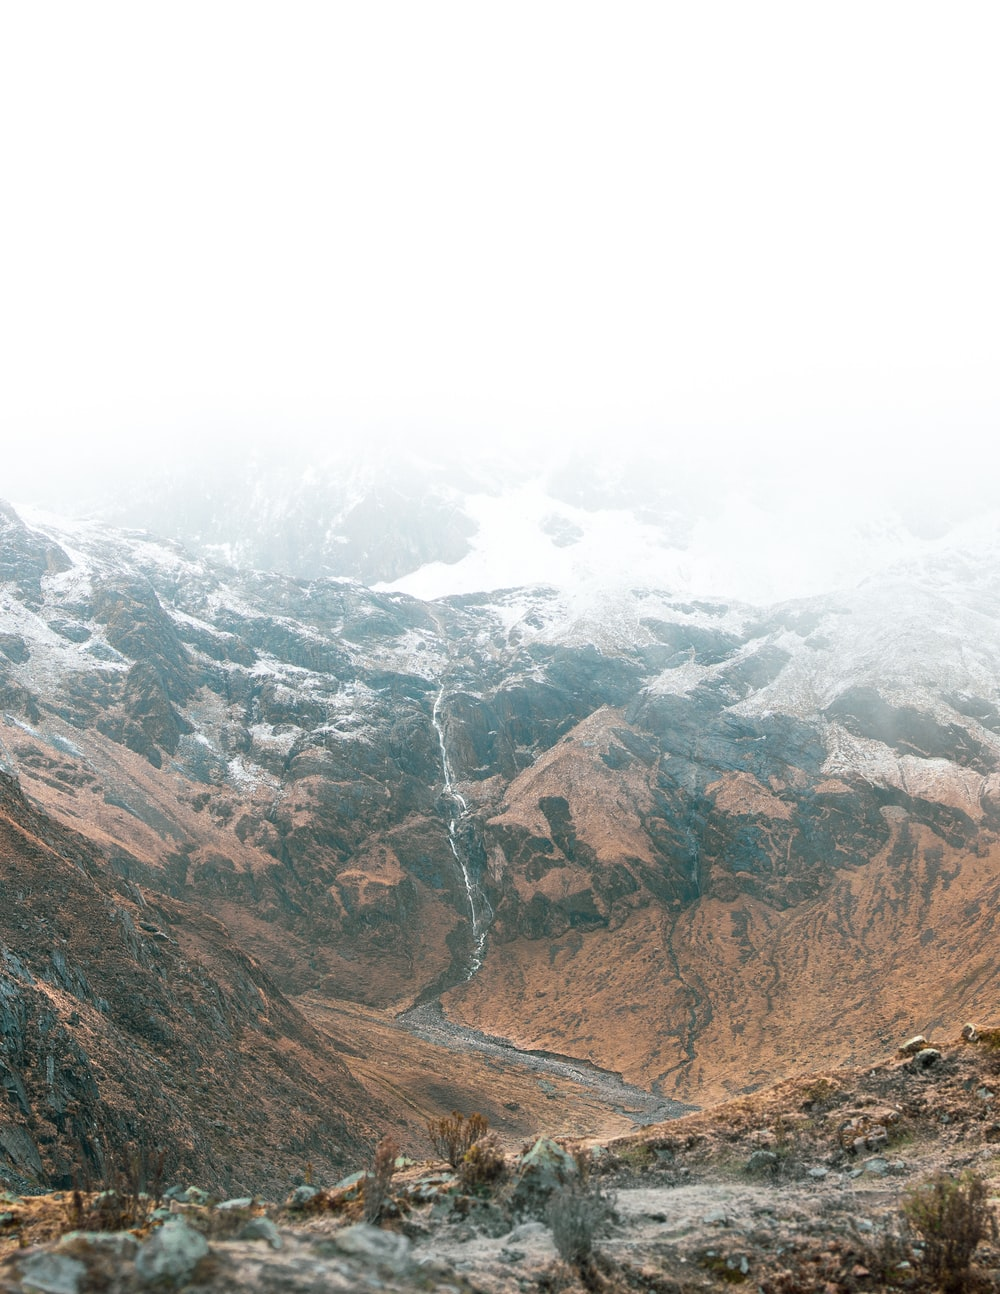 icy mountain slope scenery